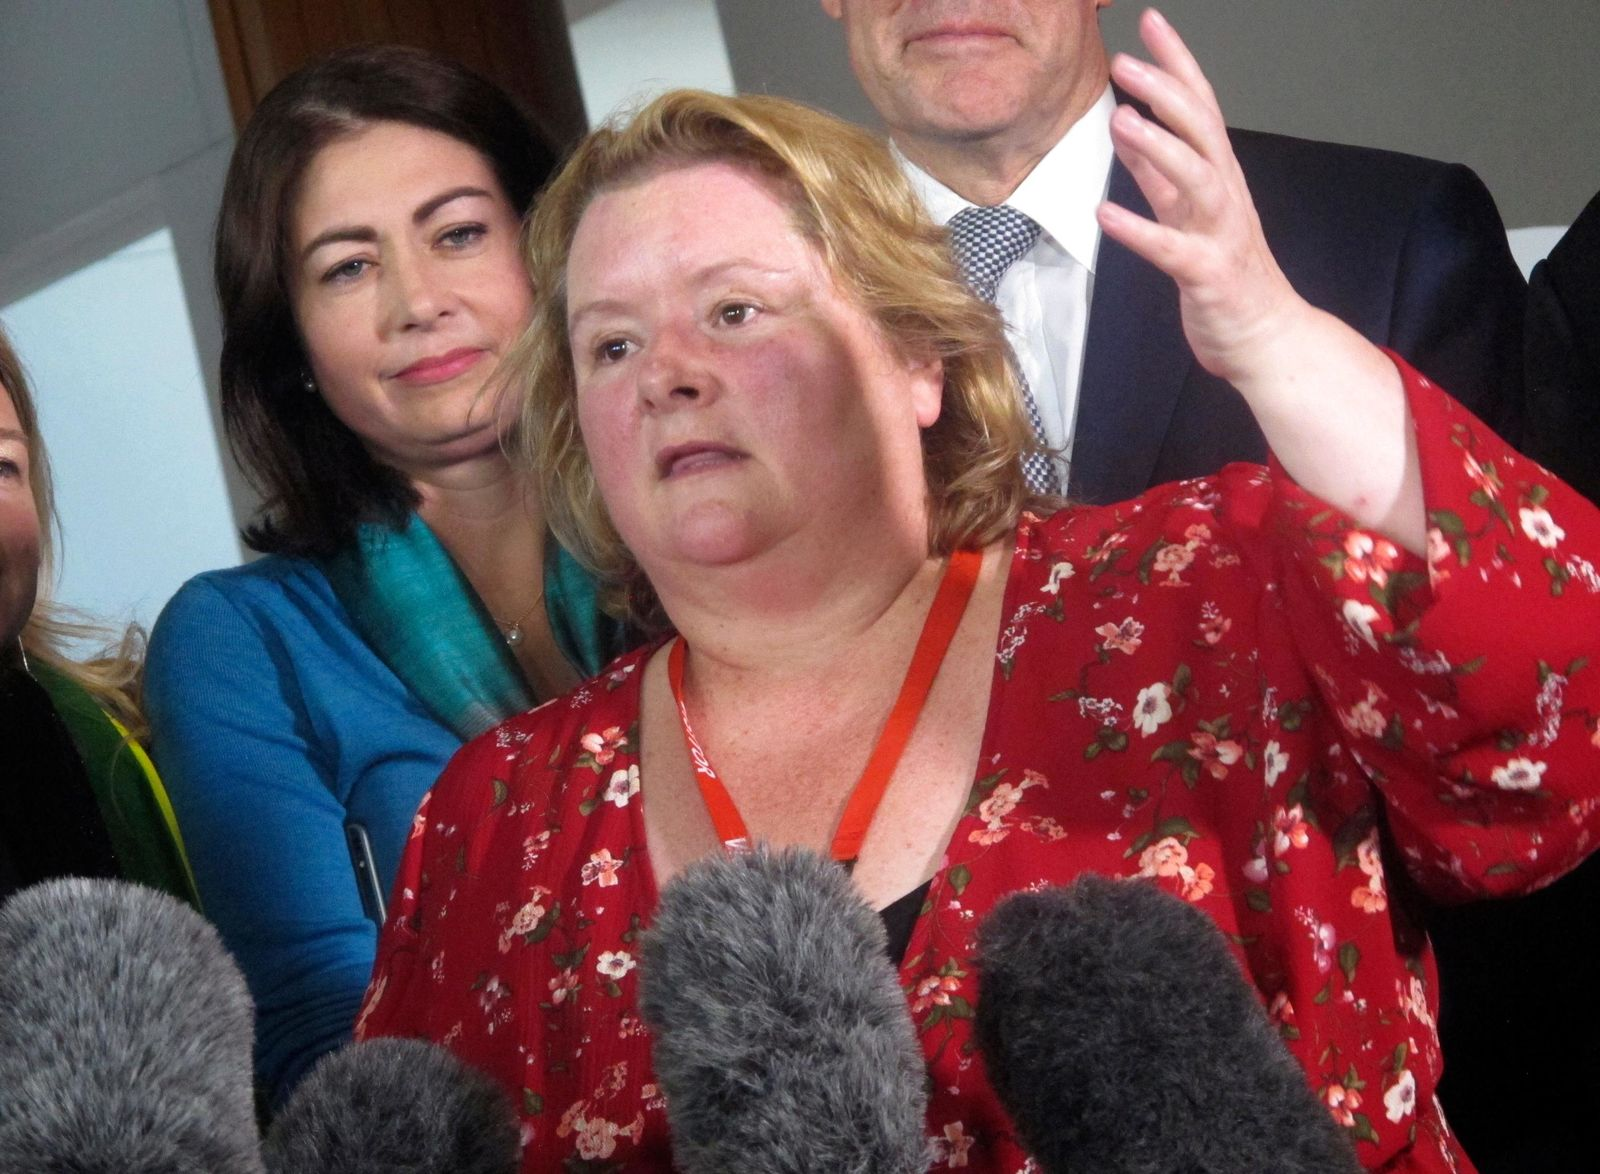 Australian actress Magda Szubanski celebrates at Parliament House in Canberra, Australia, Thursday, Dec. 7, 2017. The Parliament voted to allow same-sex marriage across the nation, following a bitter debate settled by a much-criticized government survey of voters that strongly endorsed change. (AP Photo/Rod McGuirk)